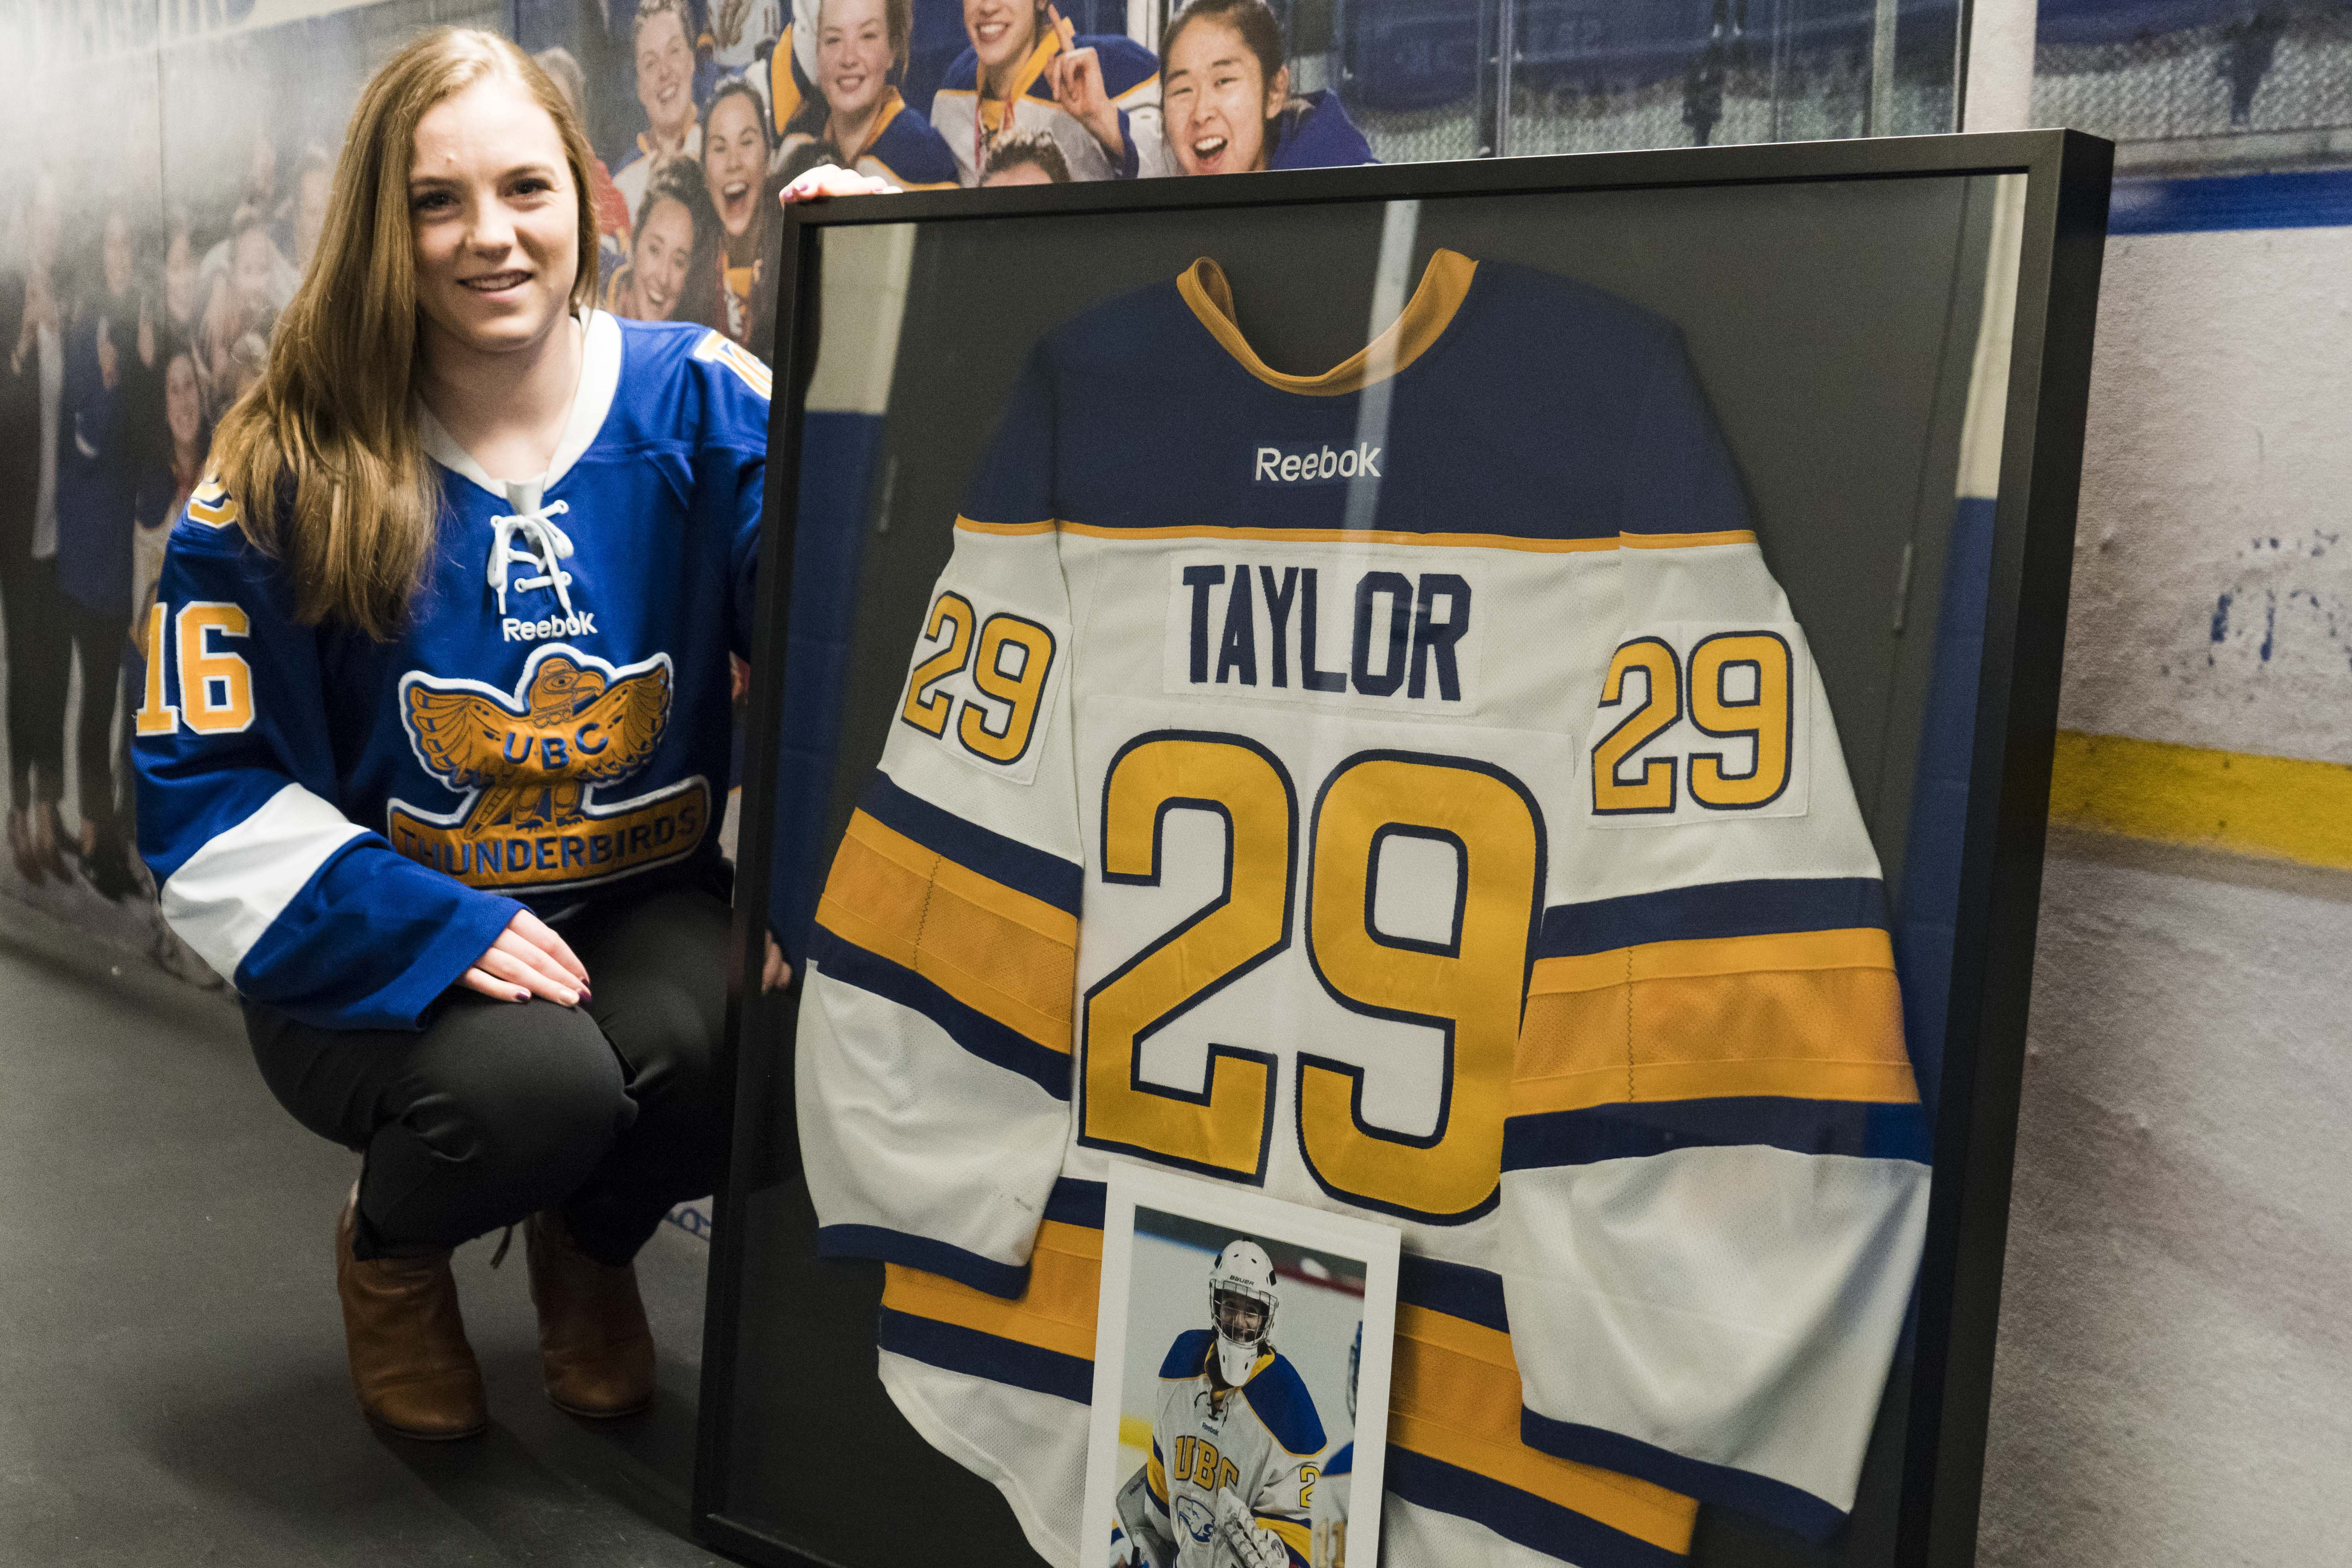 In the aftermath of the passing of teammate Laura Taylor, Ogrodniczuk set out to create a better mental health resource for student-athletes